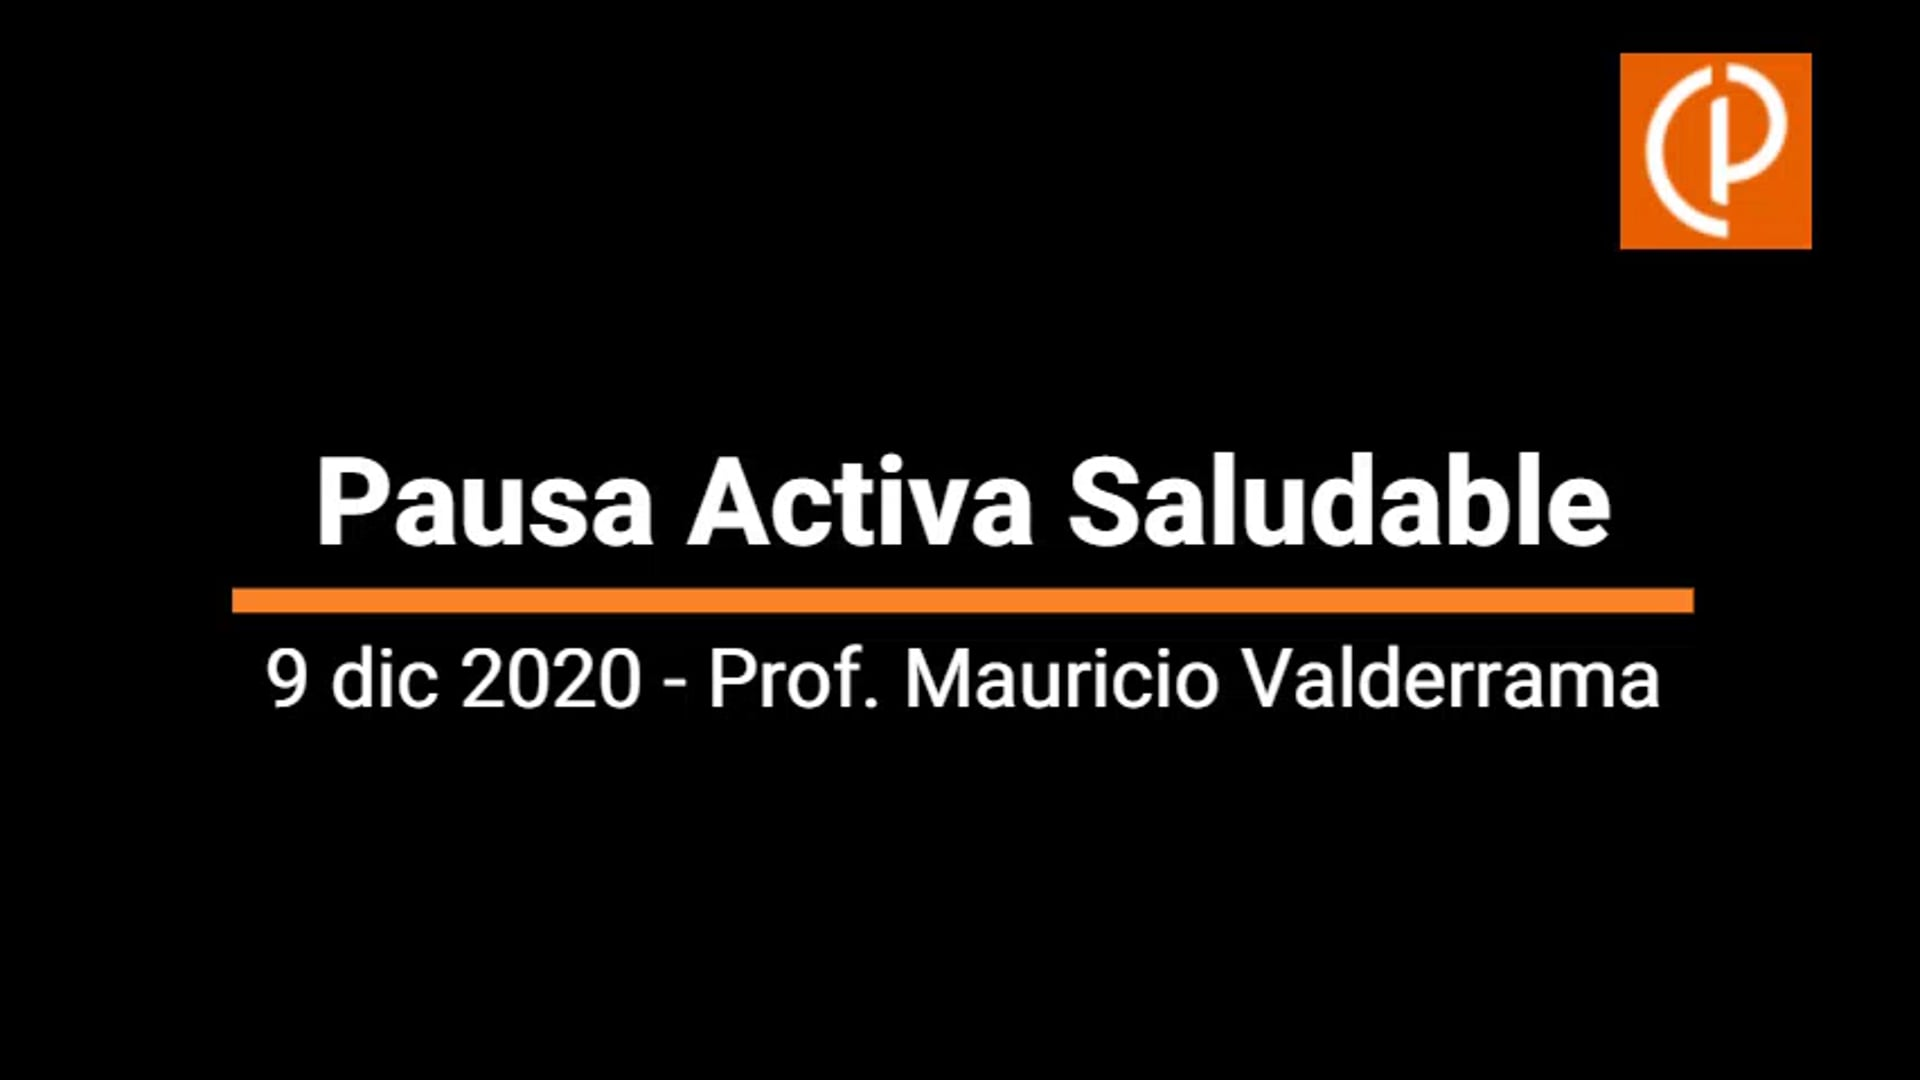 CP-Pausa Activa Saludable 2020-12-09